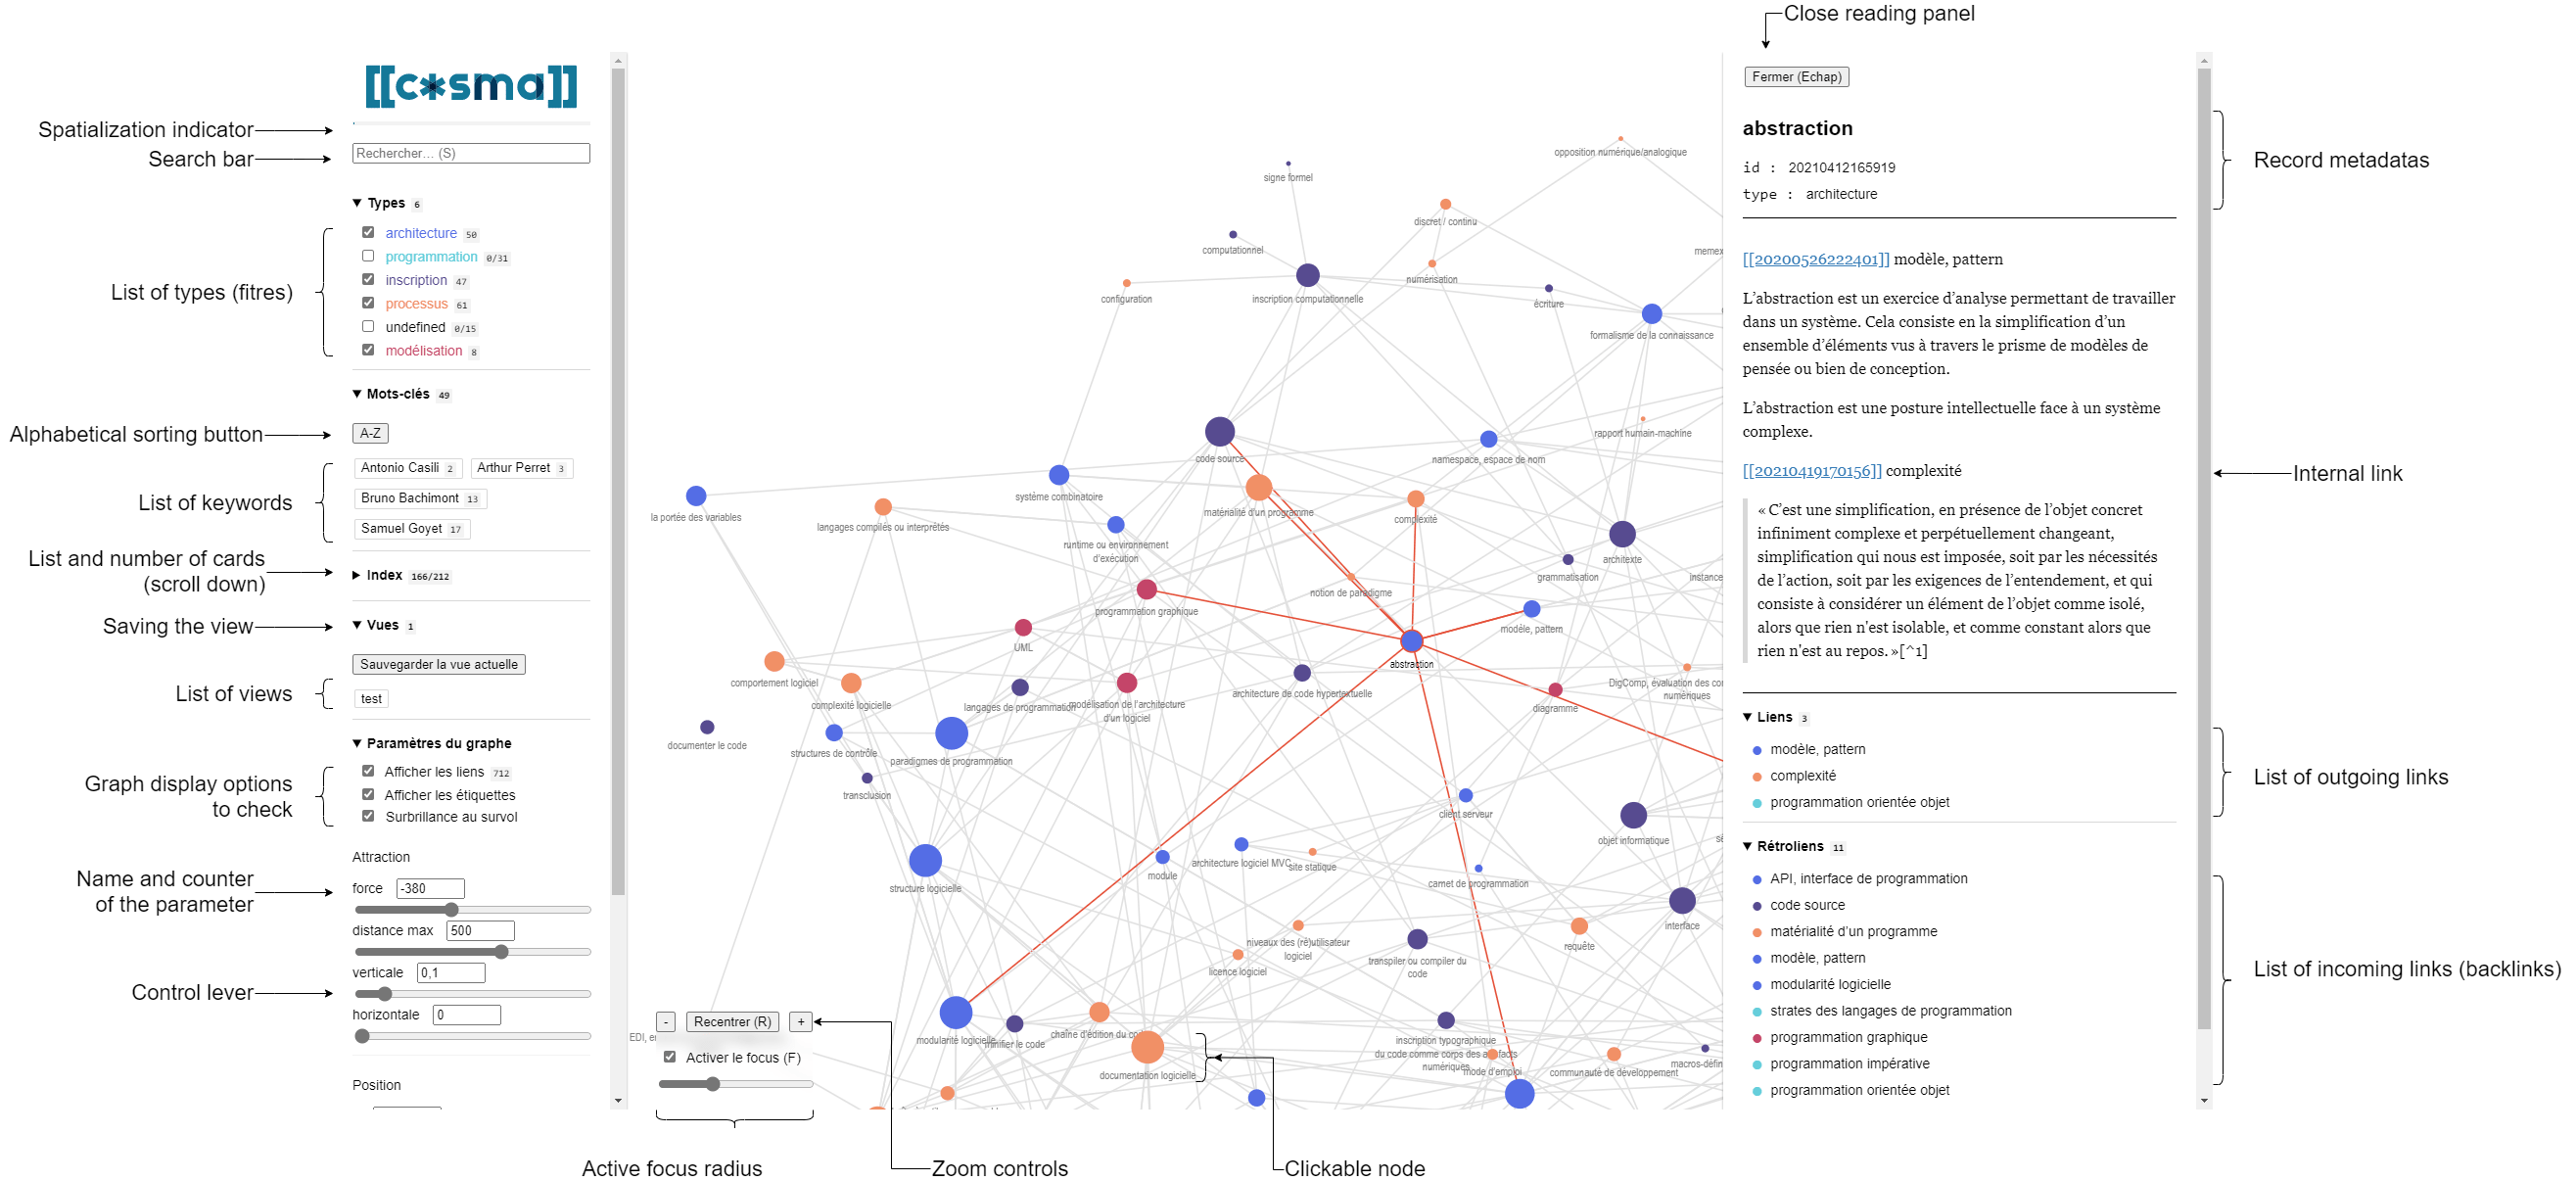 Interface of Cosma (click on the image to extend it)